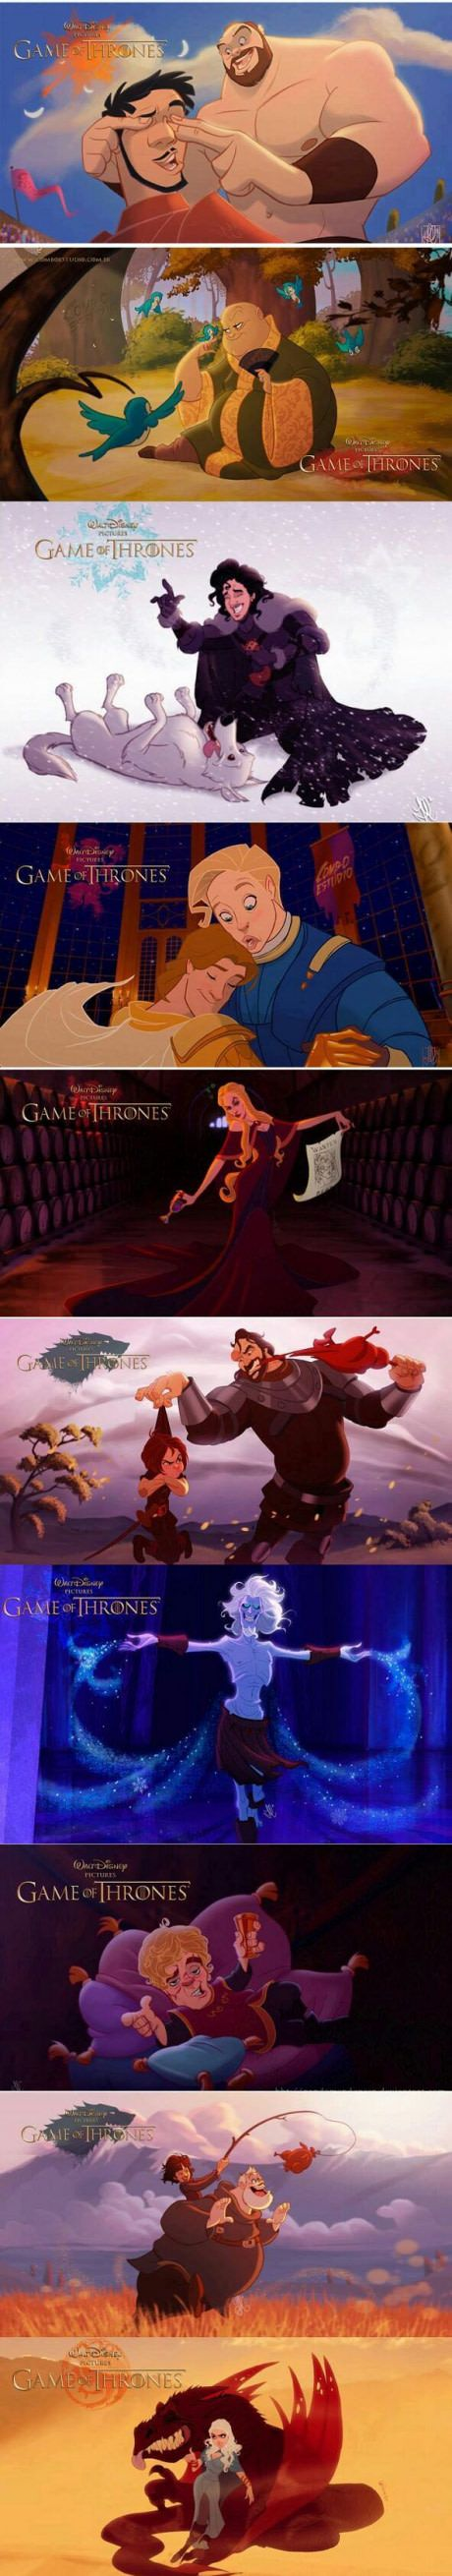 Disney's Game of Thrones (By Nandomendonssa)